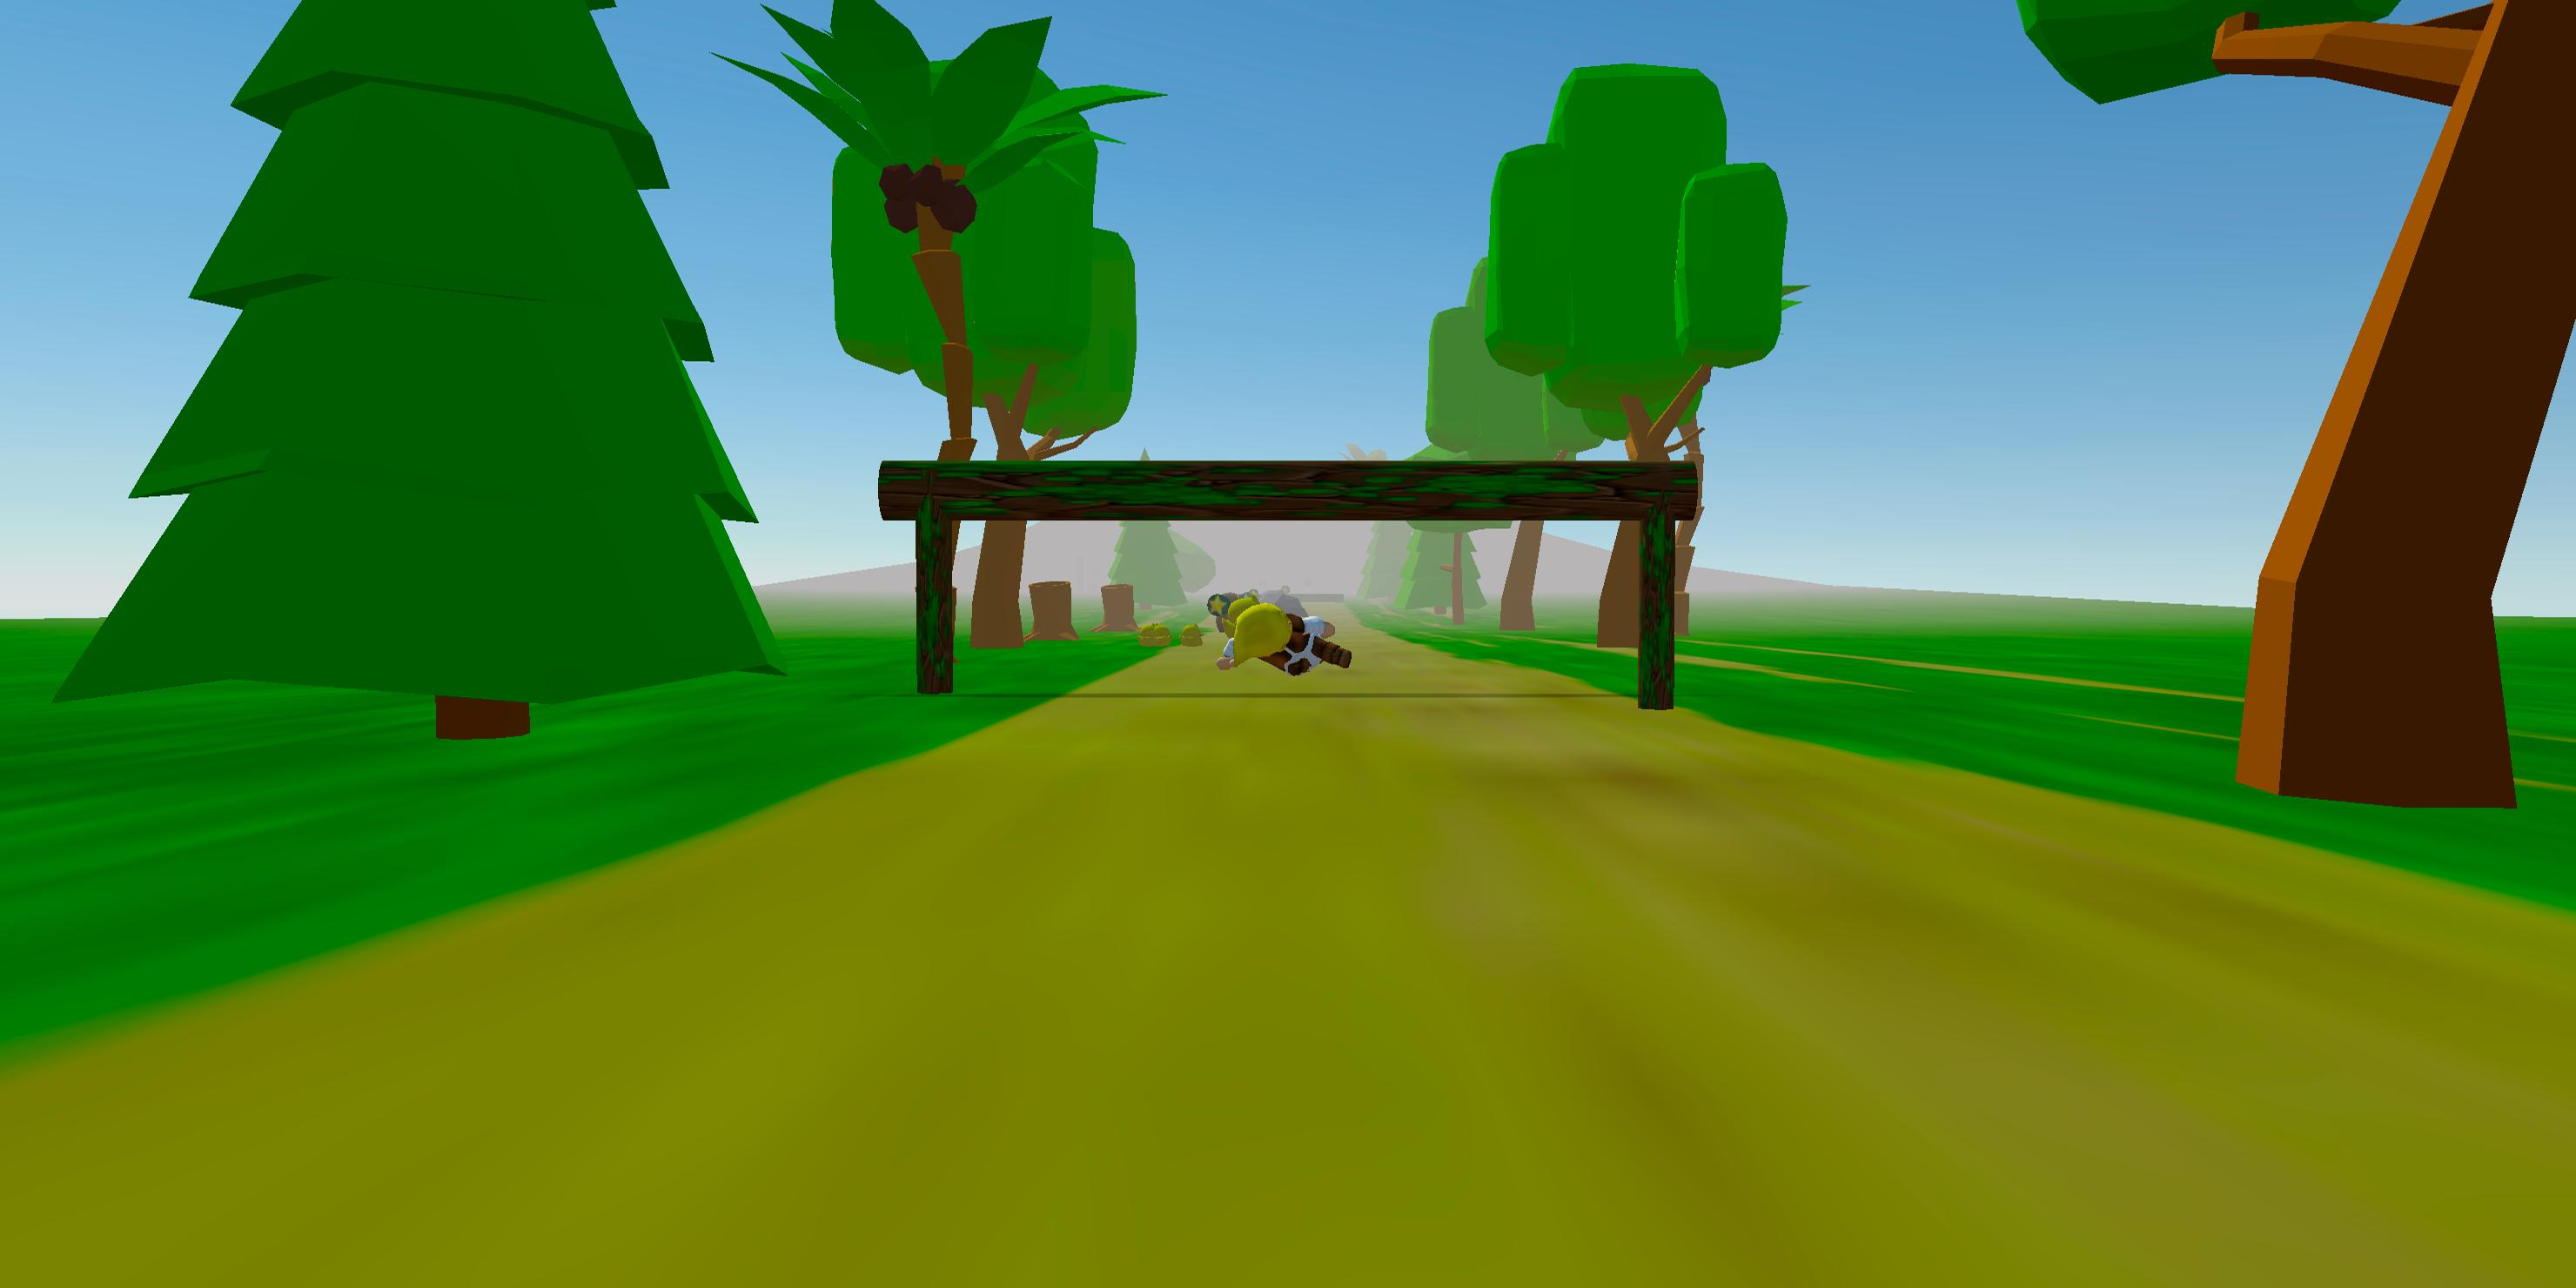 Running Crazy Farm 0.4 Screenshot 8